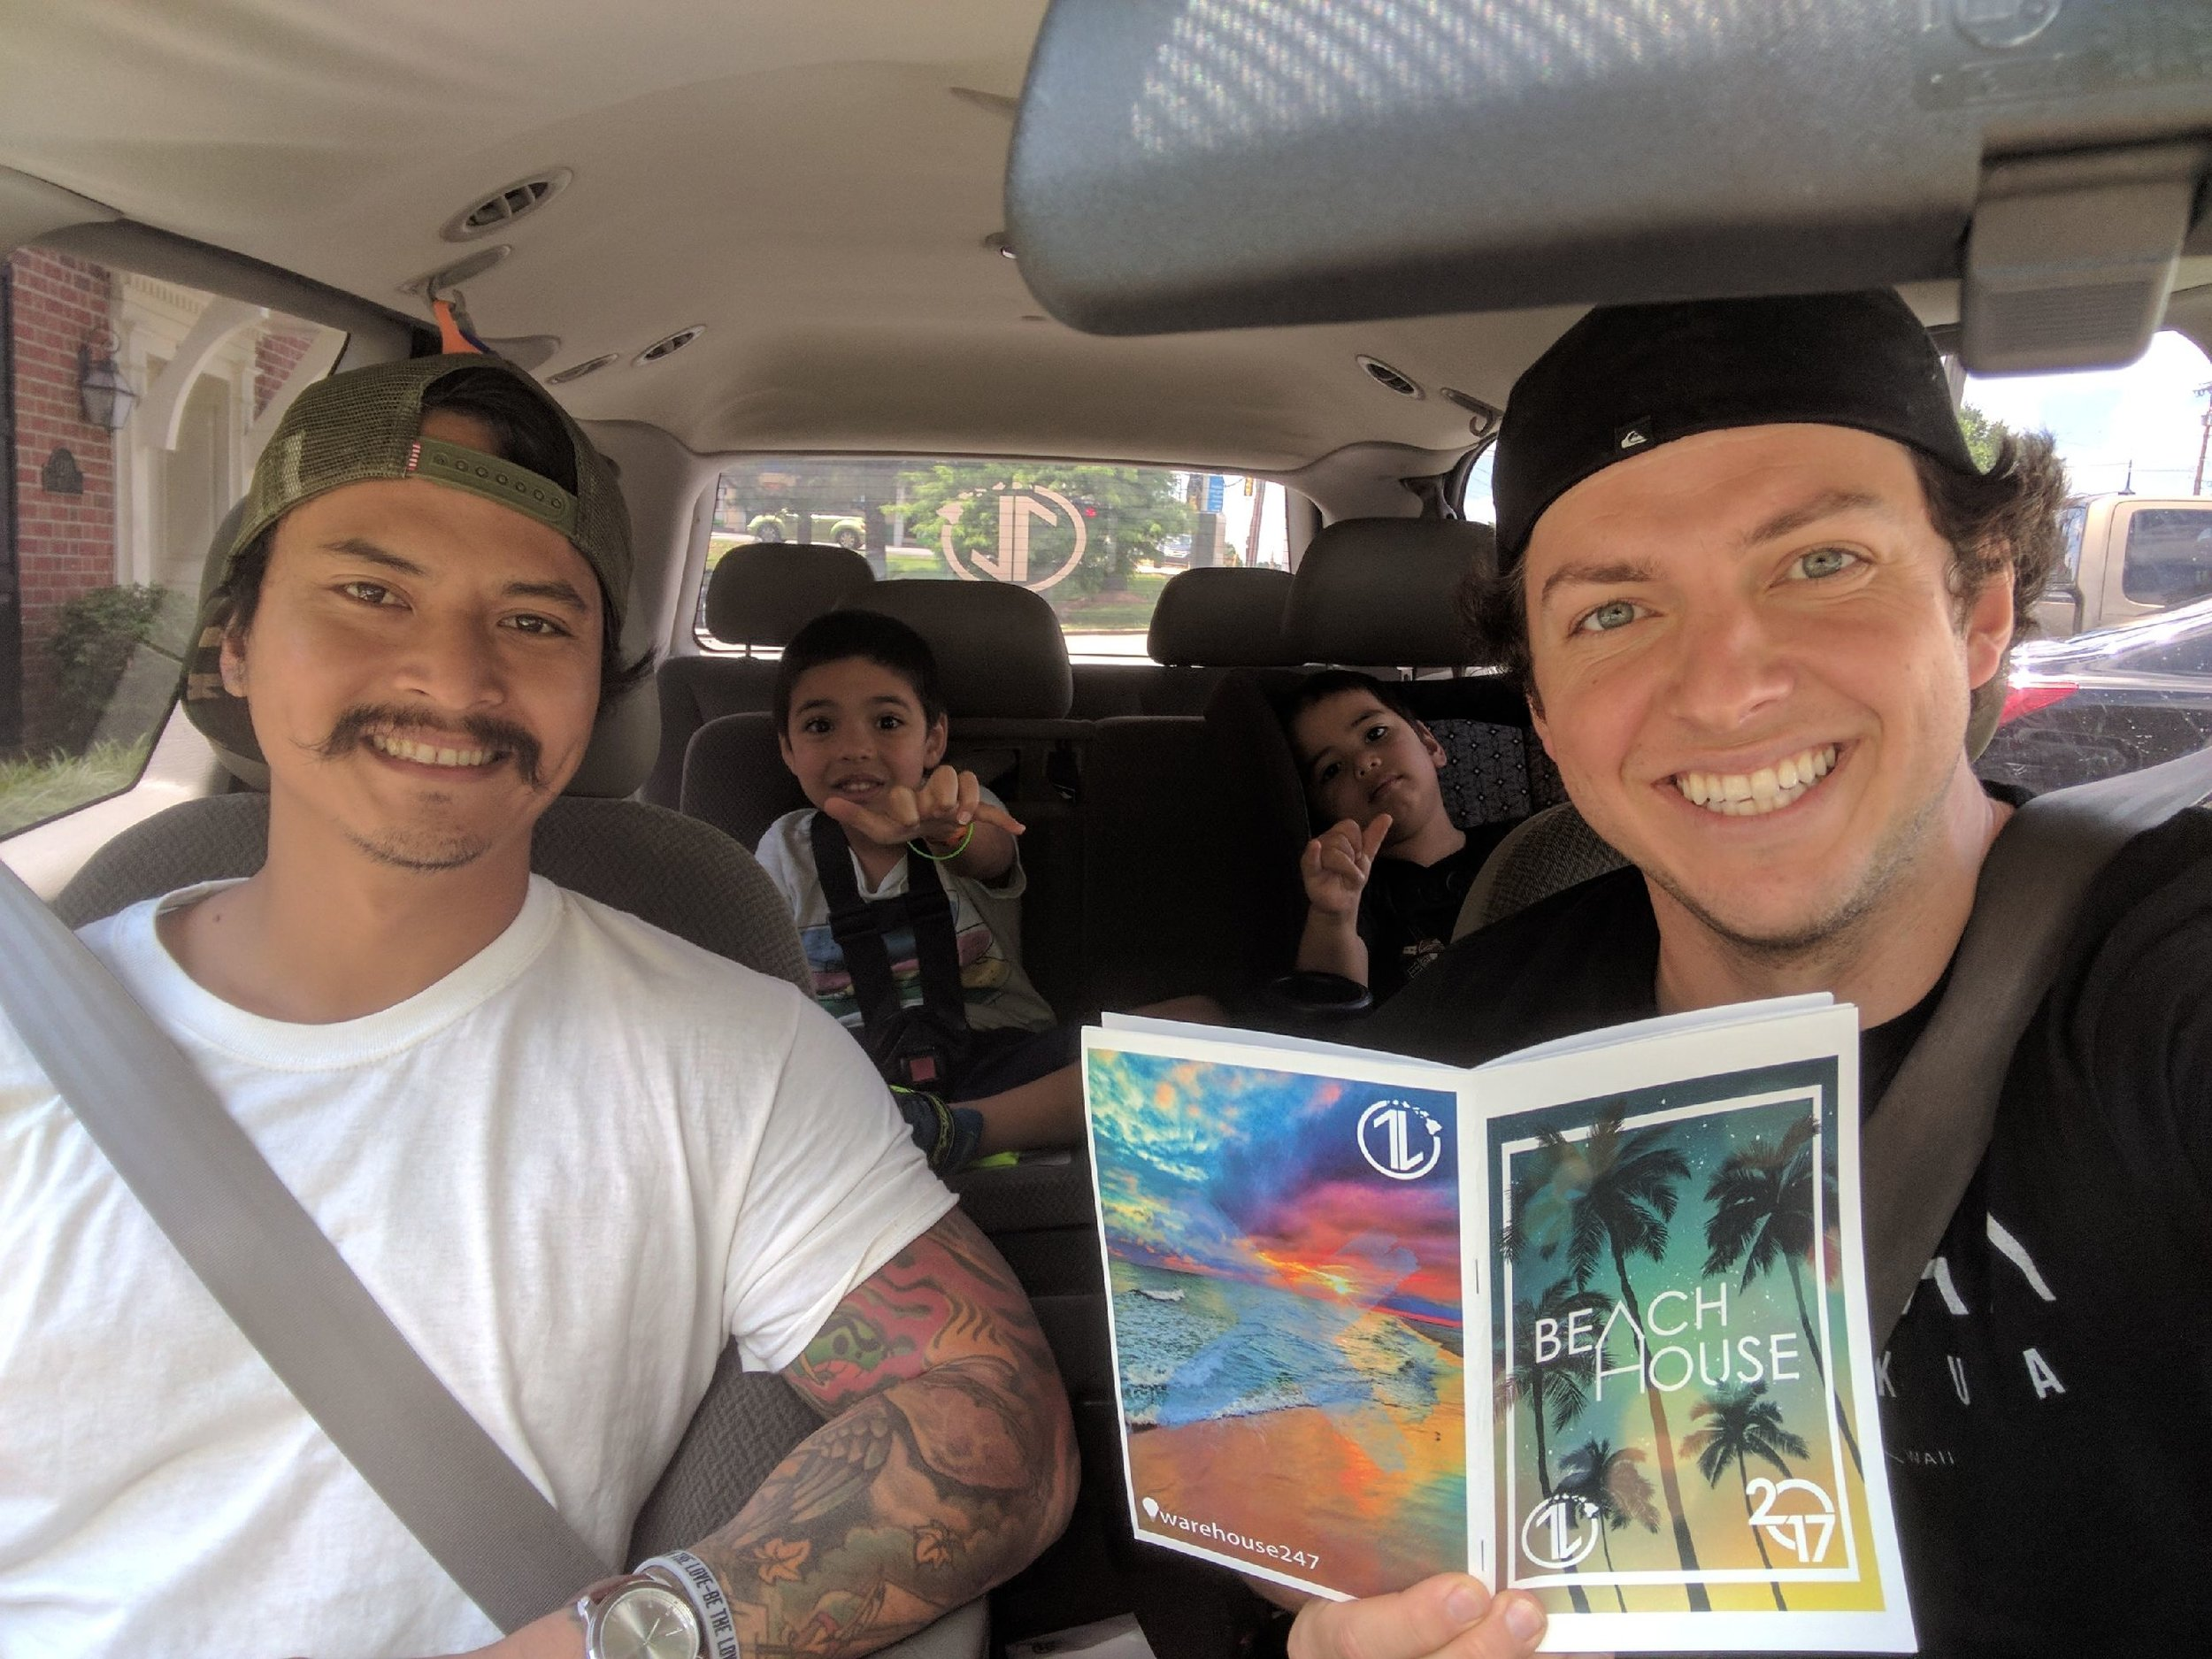 Special thanks to Jonathan Glisson, Sam Peralta, Jonavan Asato, Cole & Rikki Permenter, and all who contributed to this 1L Devotional Curriculum to make it a reality!